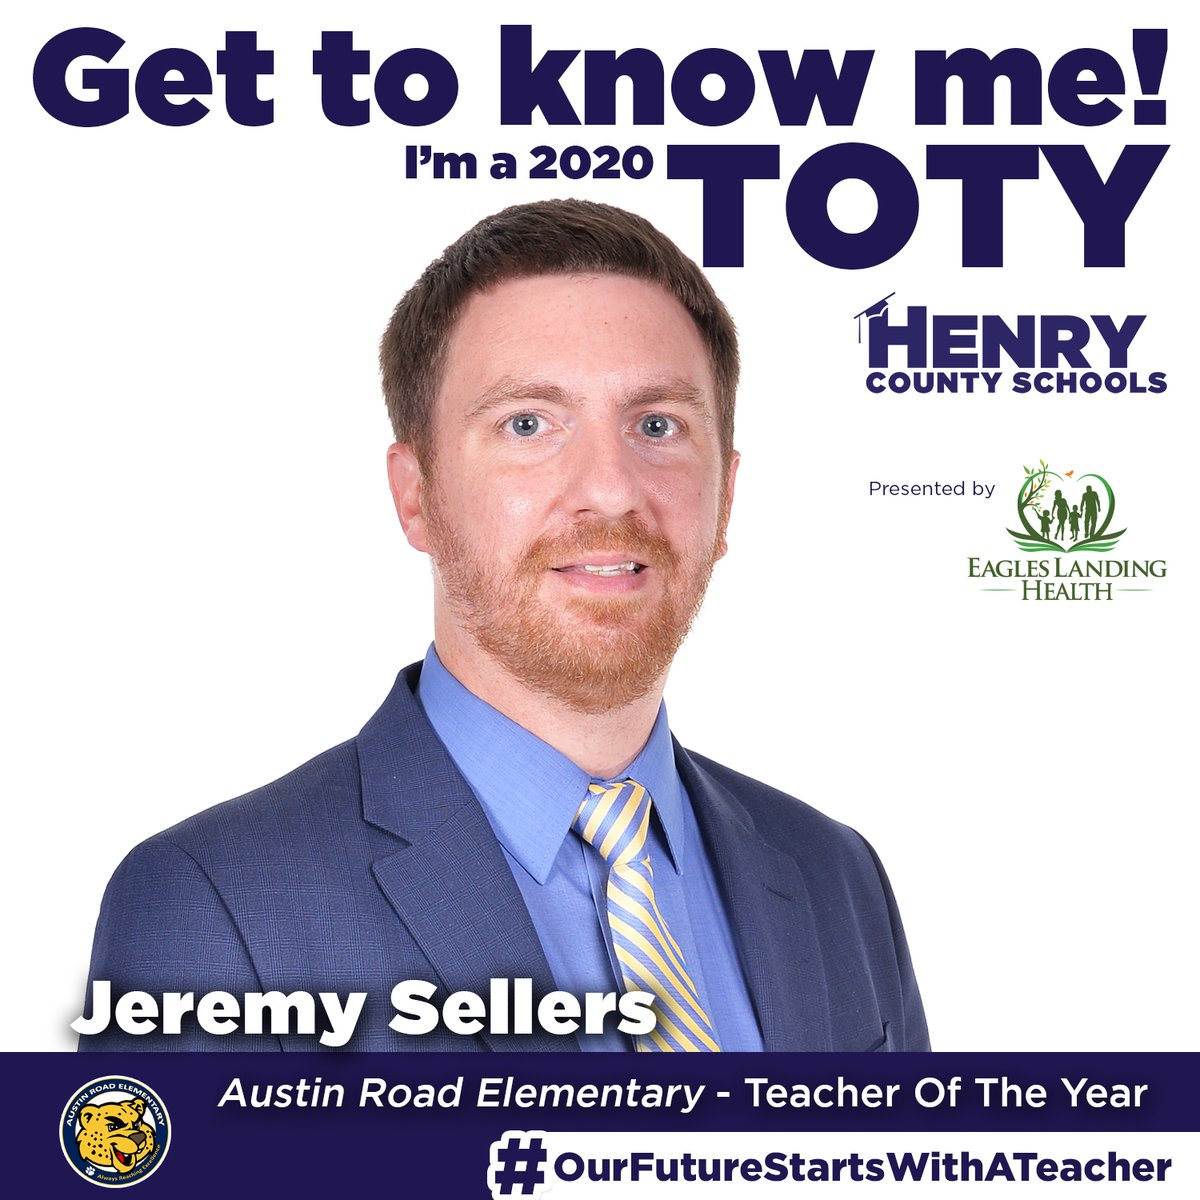 Our next Teacher of the Year, from @ARES_HCS, is Jeremy Sellers!  Congrats to Mr. Sellers! #OurFutureStartsWithATeacher  TOTY Sponsor: @ELHgeorgia